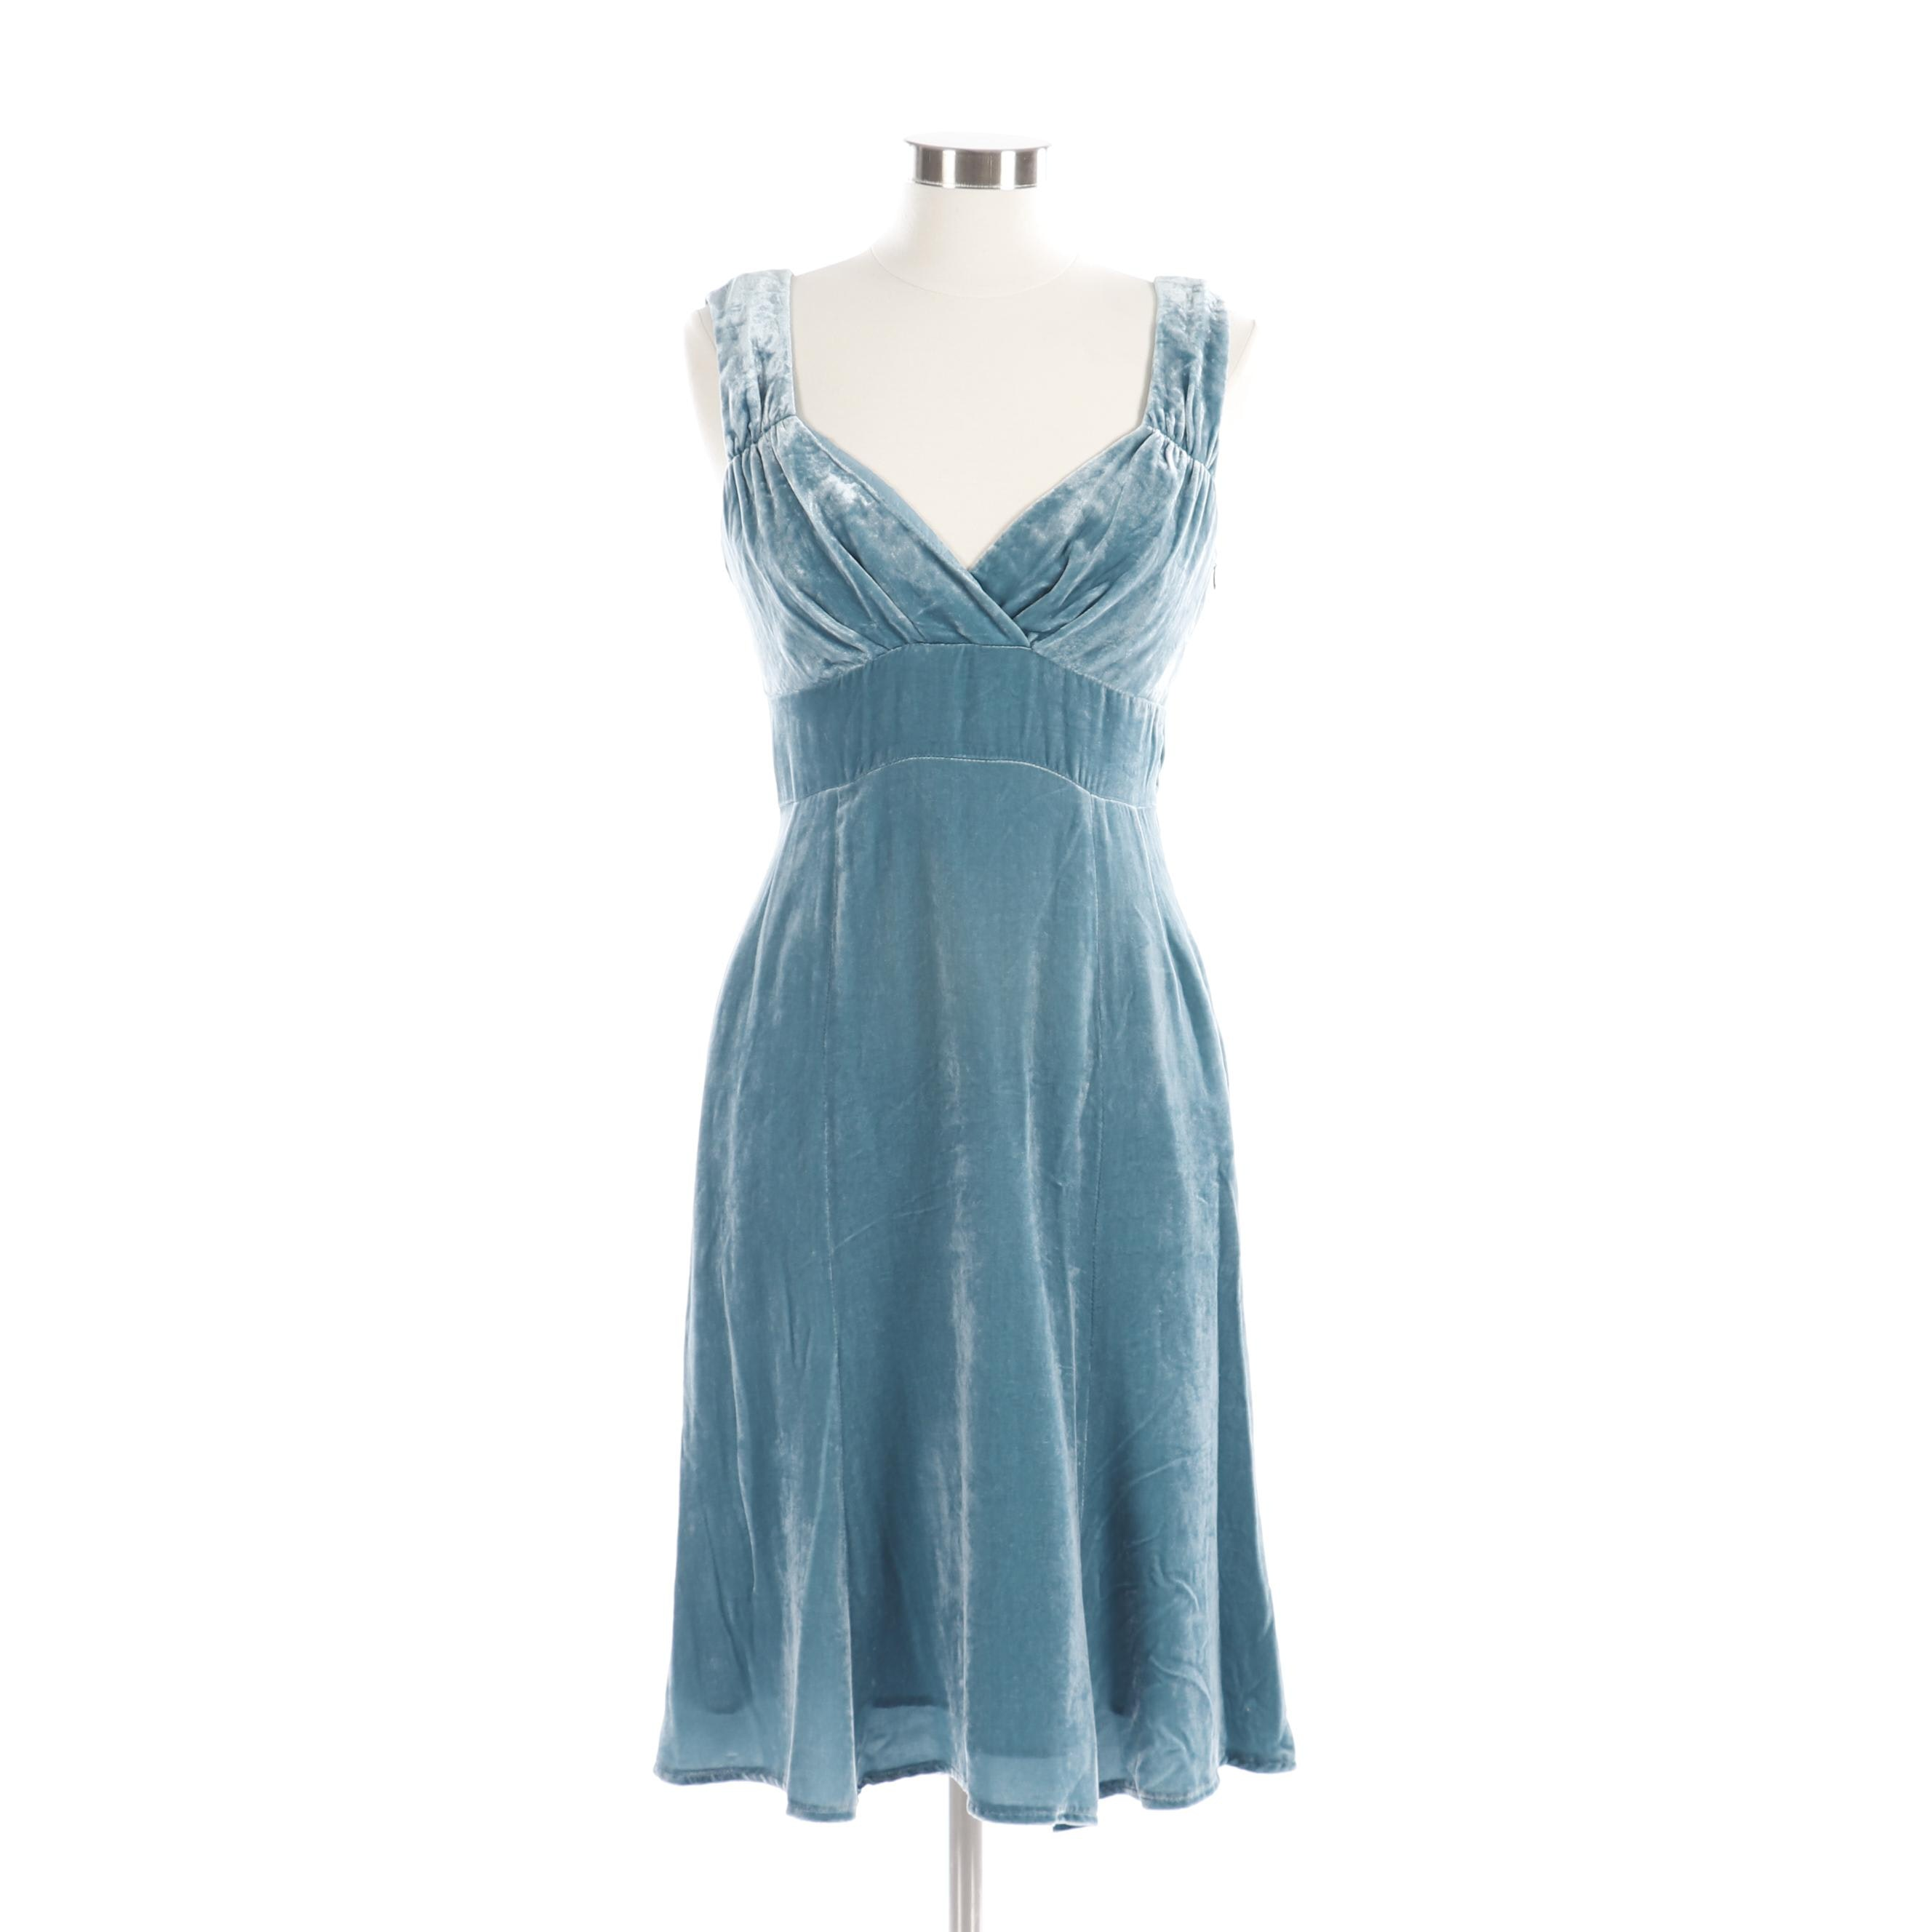 Nanette Lepore Blue Velvet Sleeveless Dress